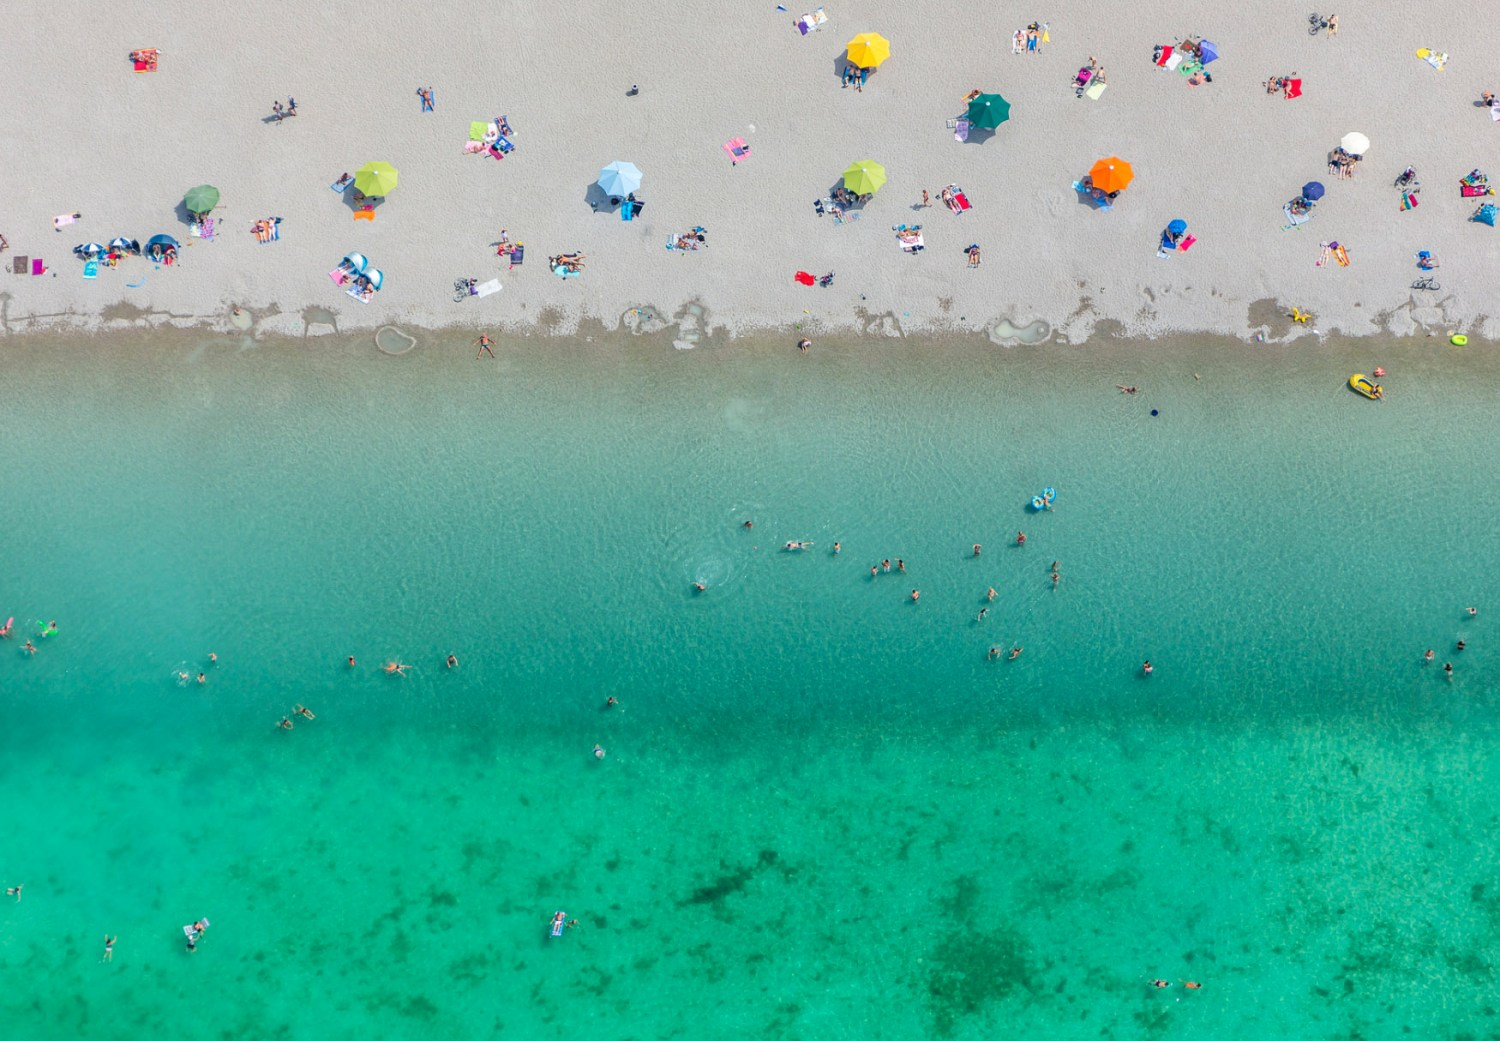 Brilliant aerial photography by Klaus Leidorf